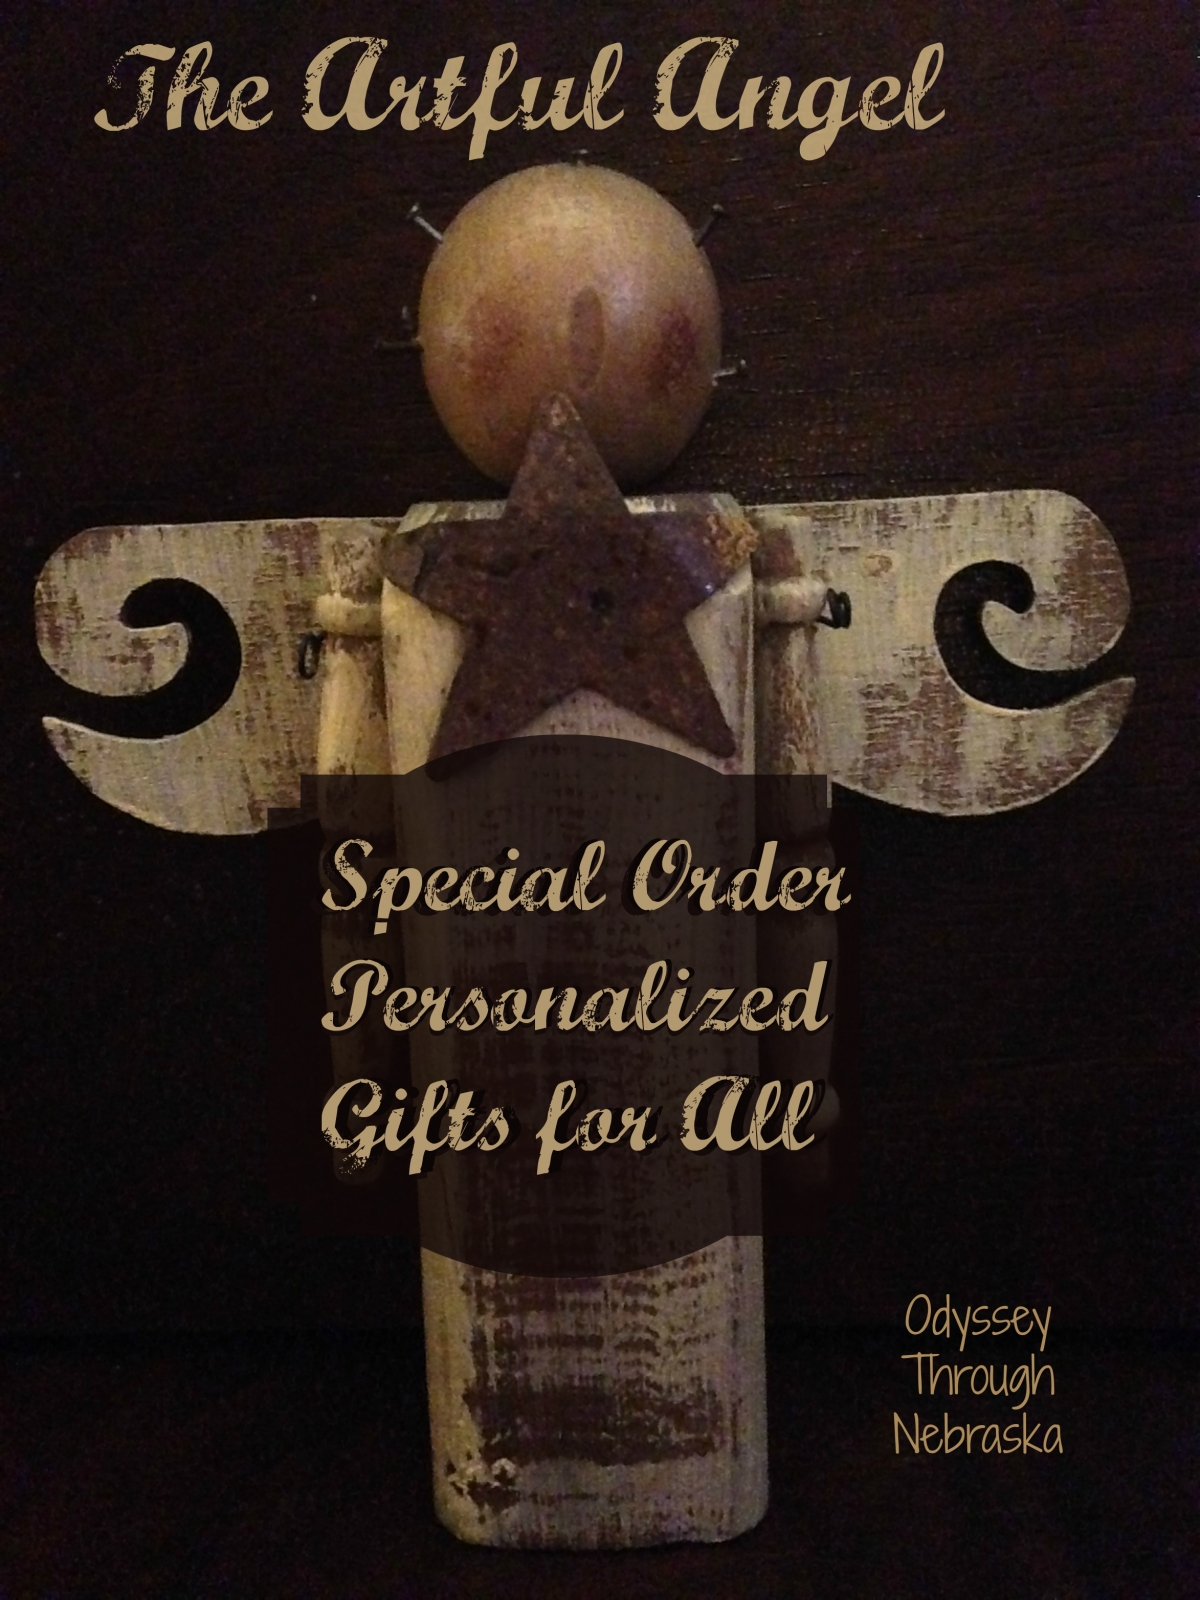 Personalized gifts can be custom made by the Artful Angel